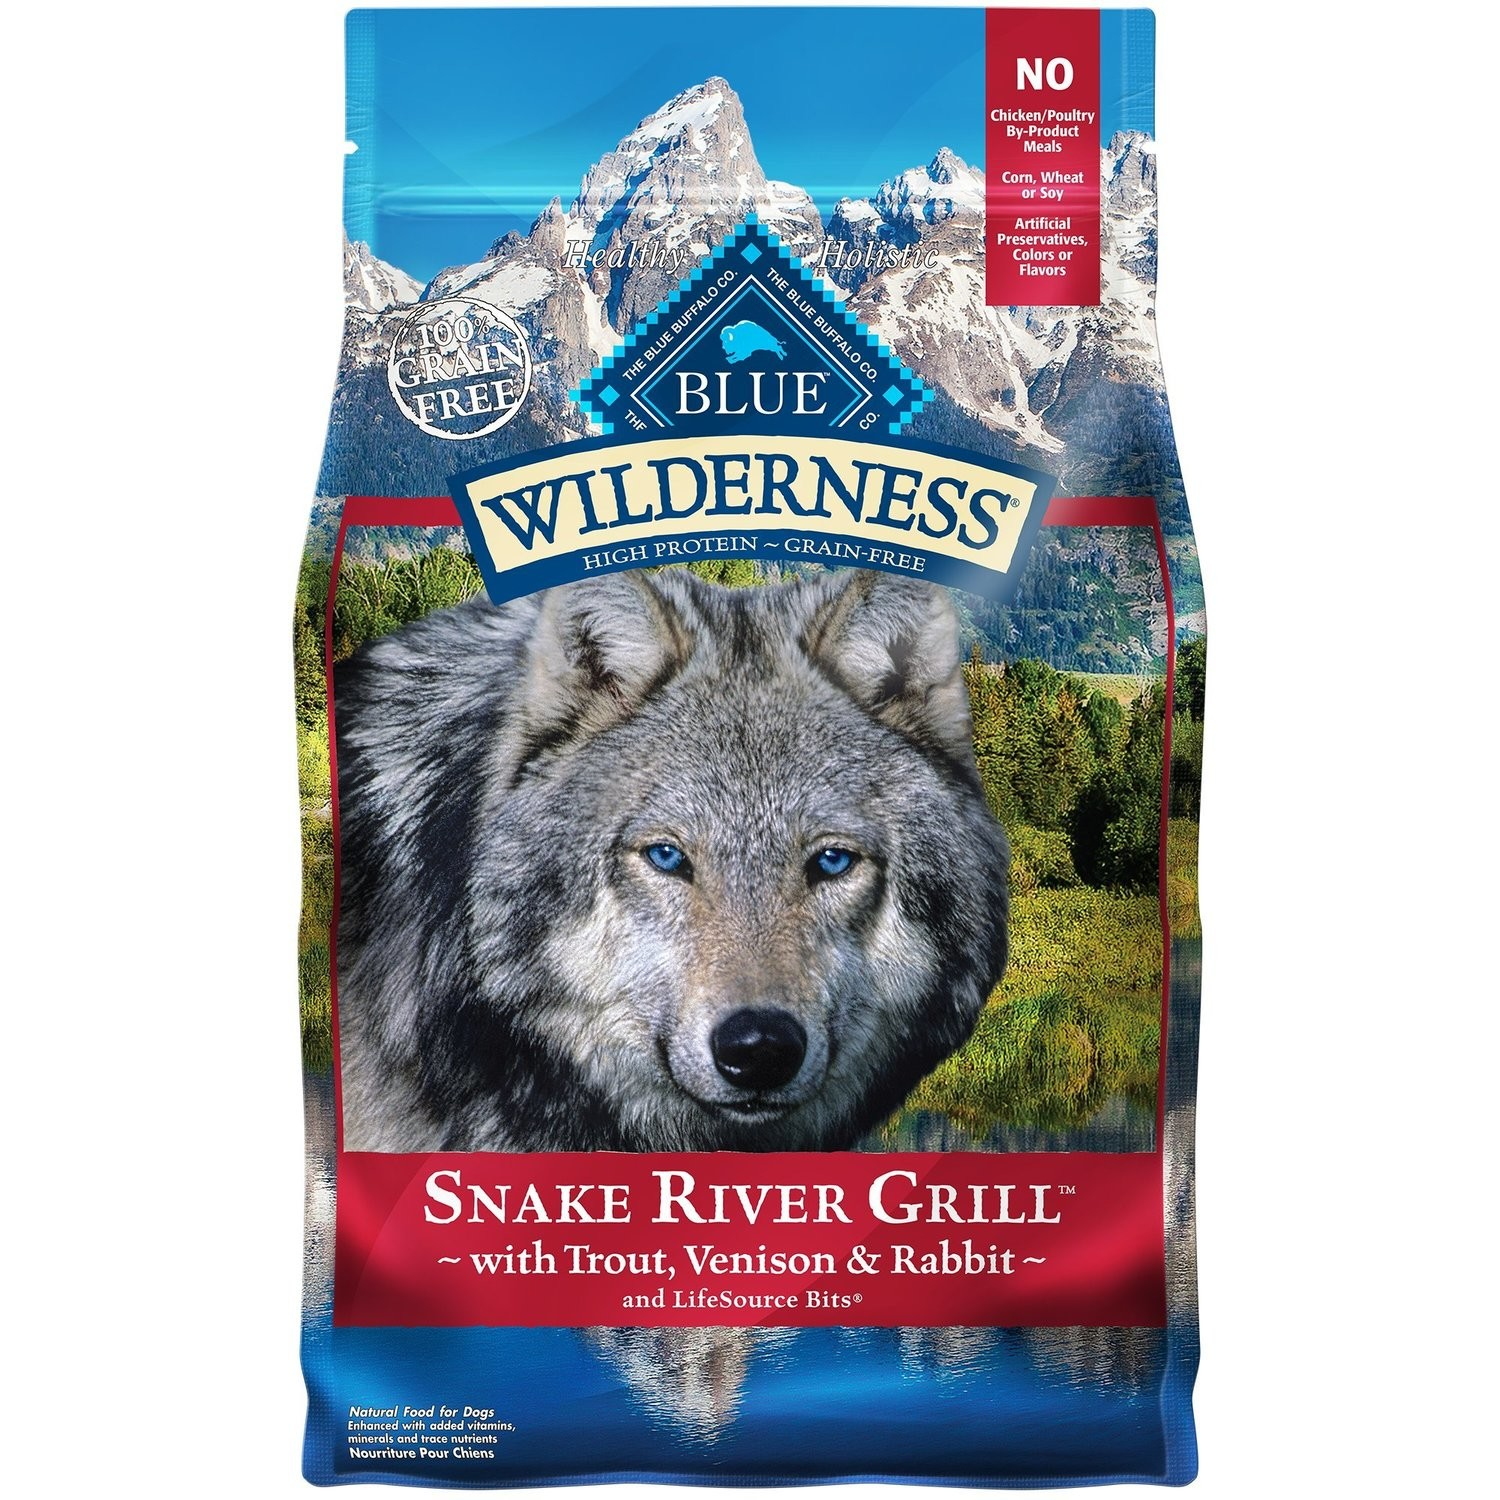 BLUE WILDERNESS SNAKE RIVER GRILL W/TROUT, VENISON & RABBIT 4 LBS